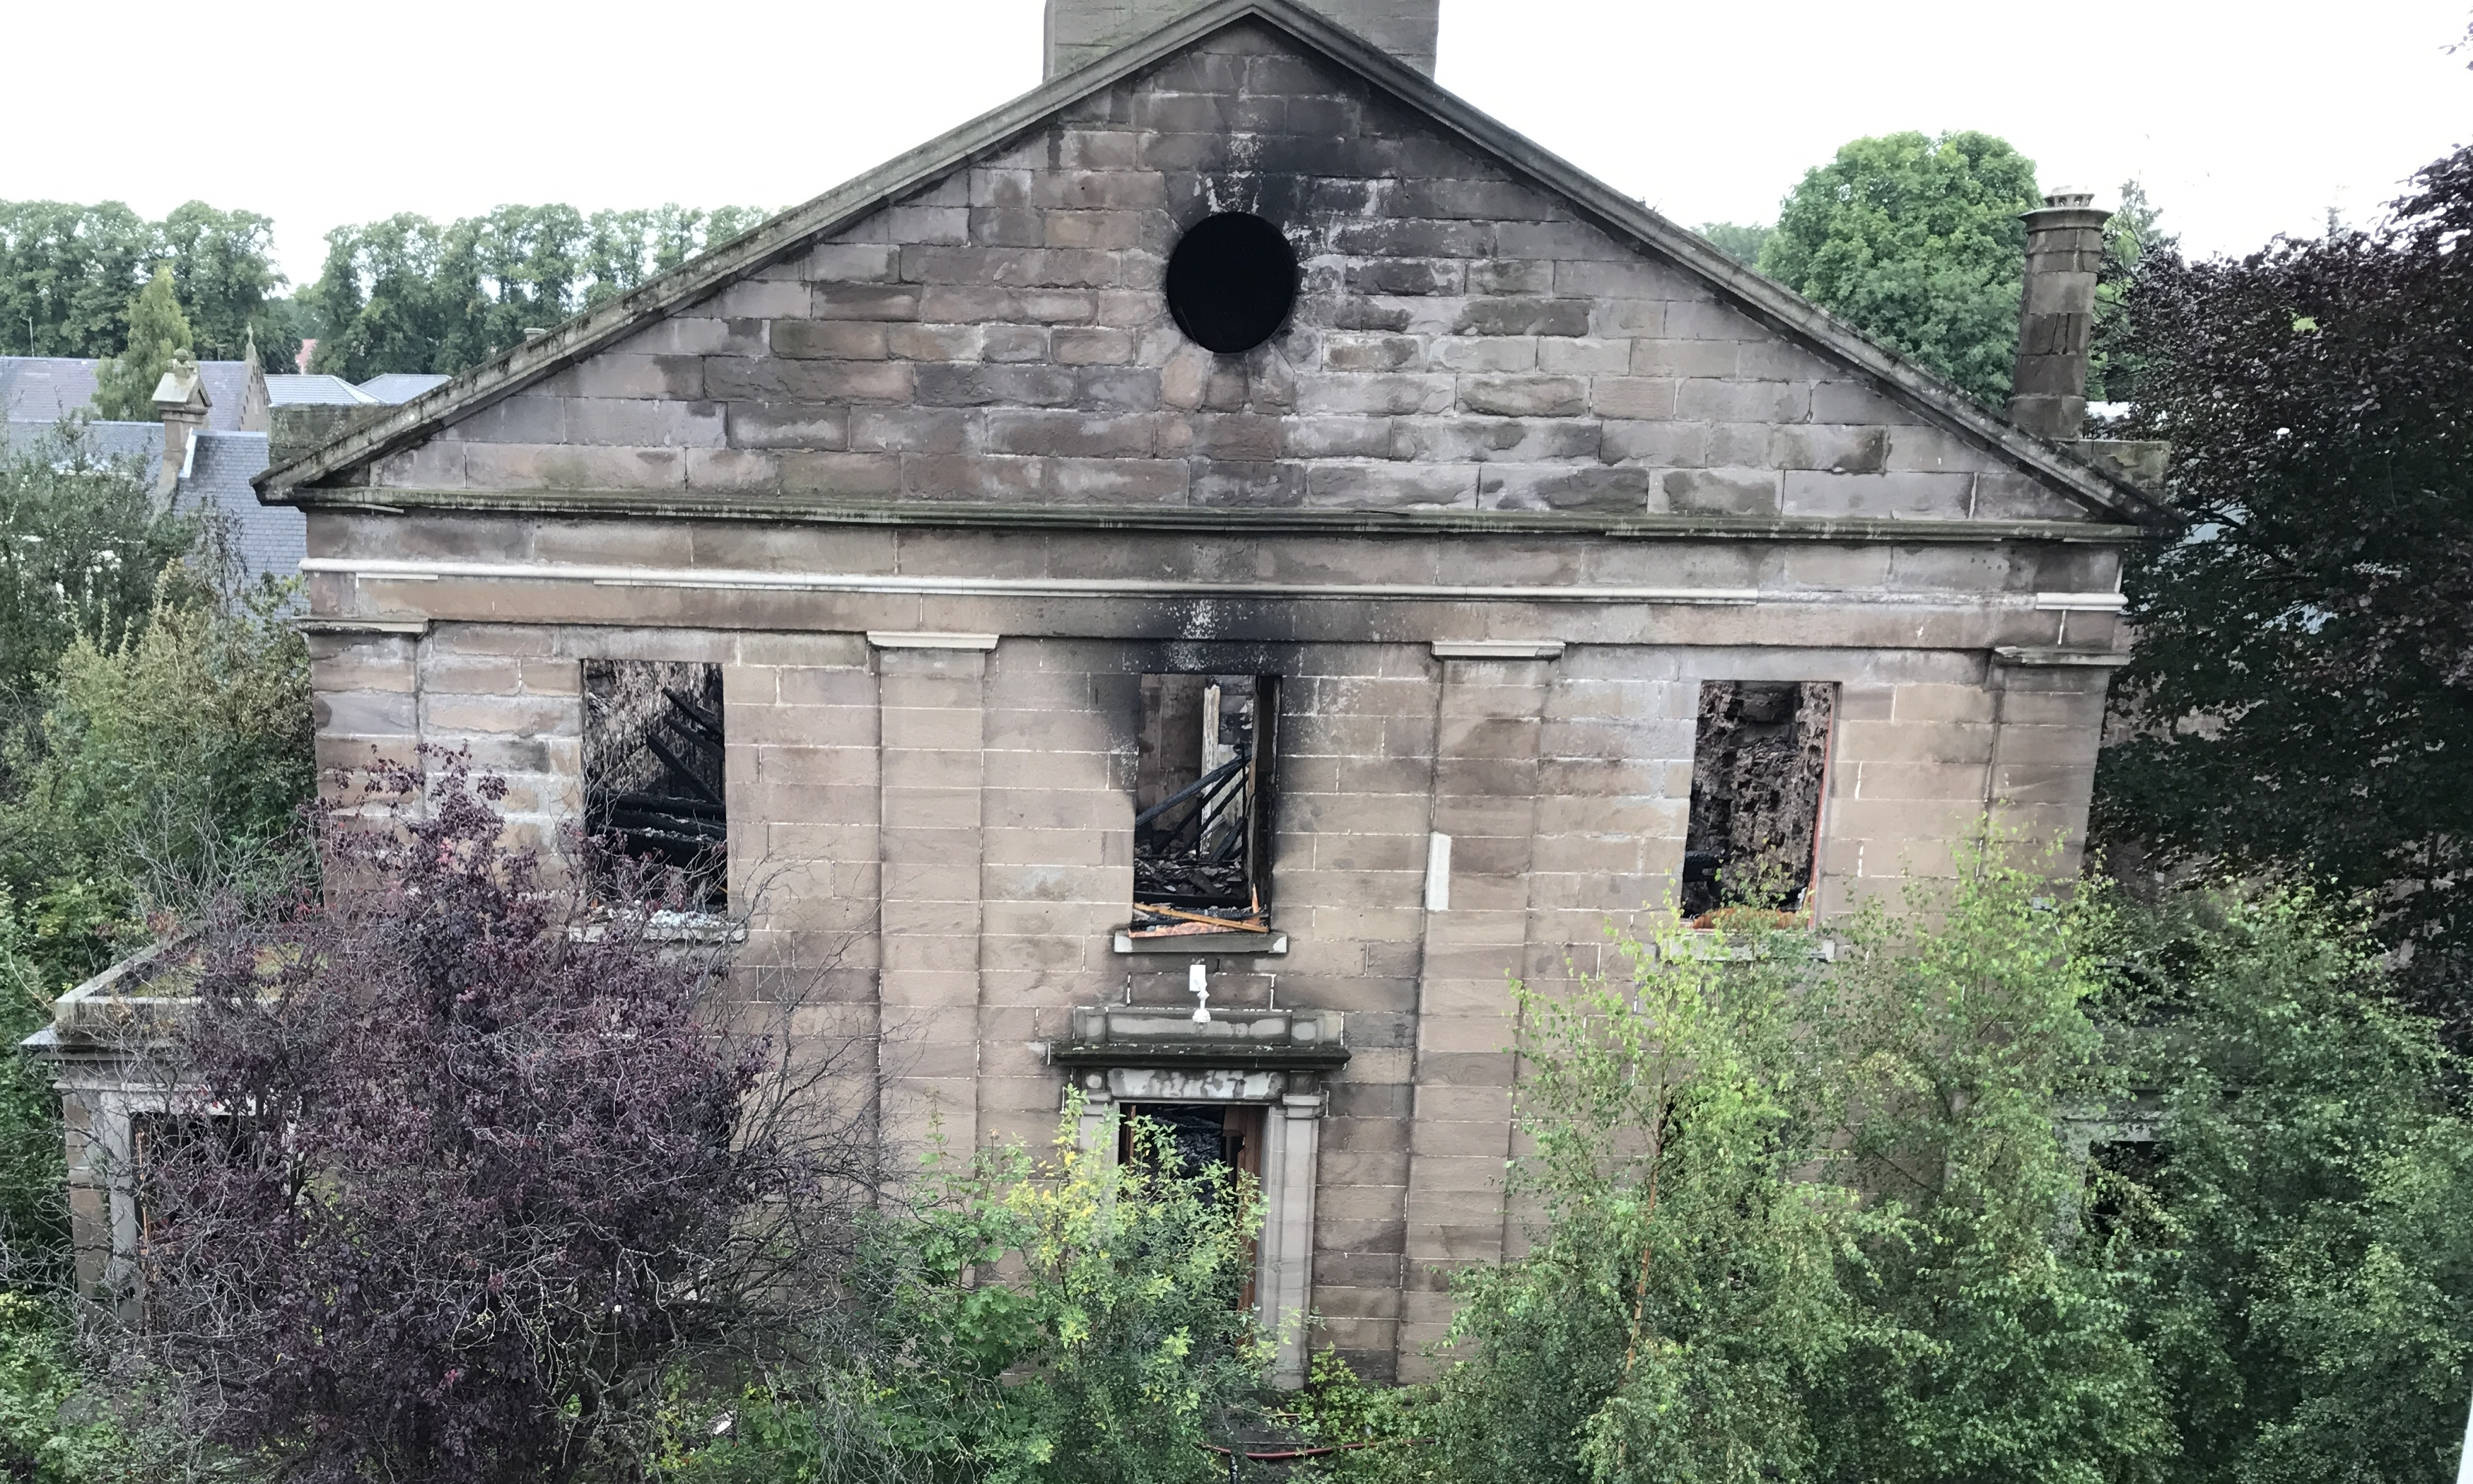 The derelict building suffered major damage in the blaze.